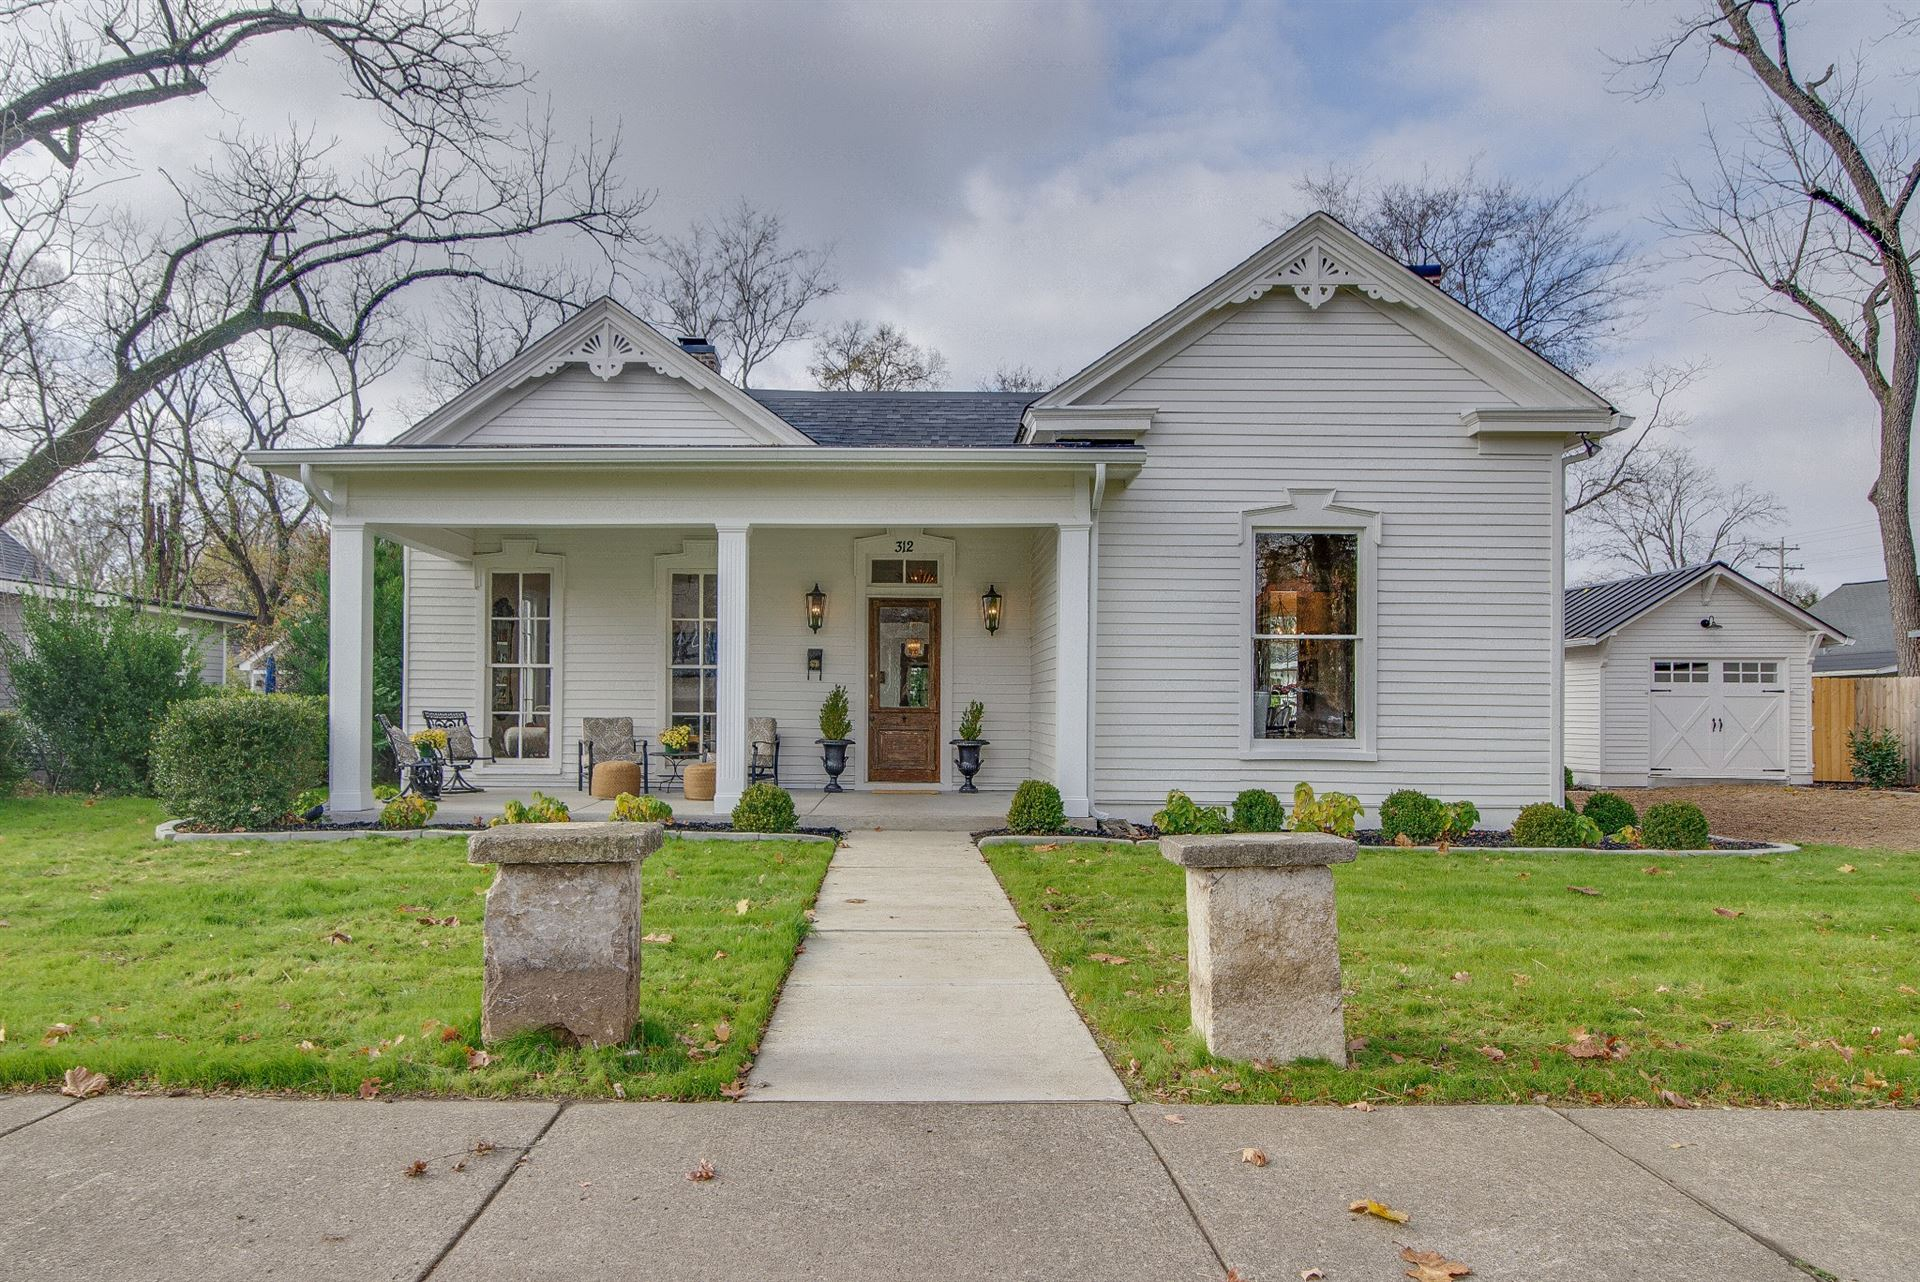 Photo of 312 3rd Ave S, Franklin, TN 37064 (MLS # 2209882)